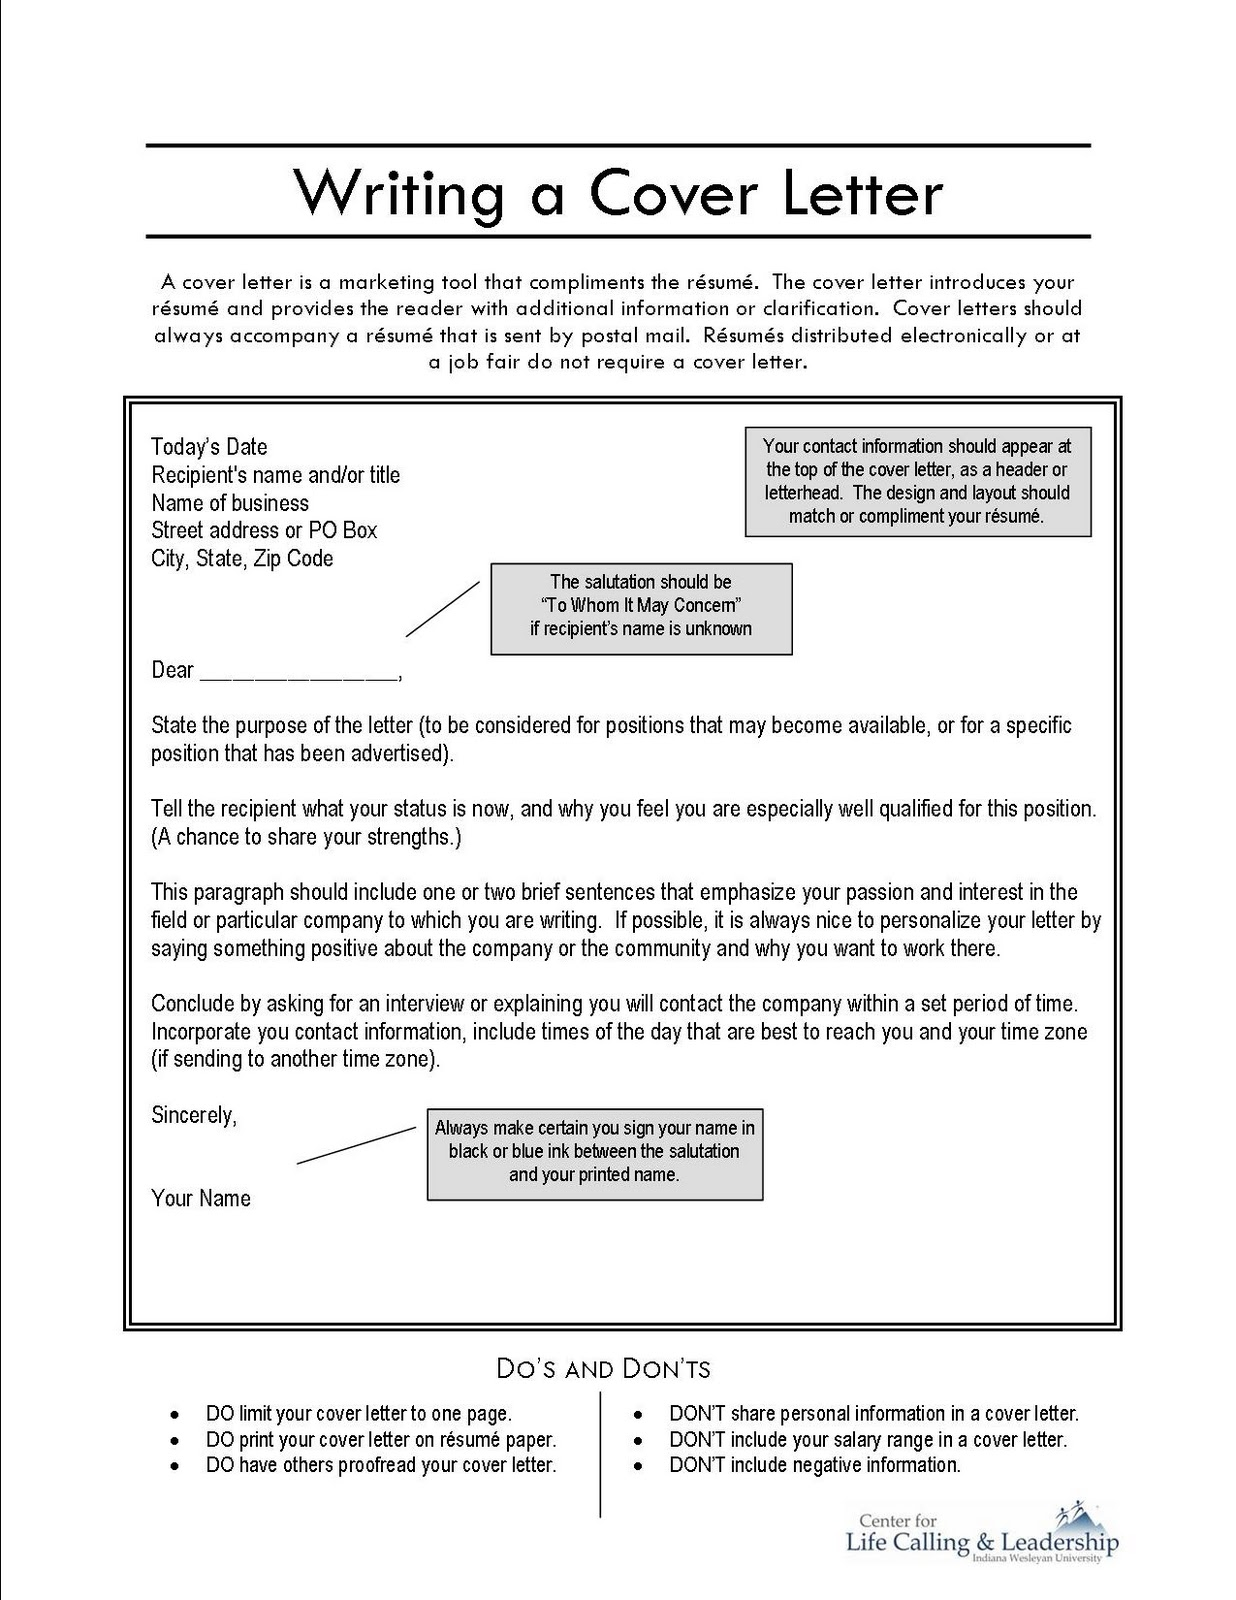 Writing covering letters